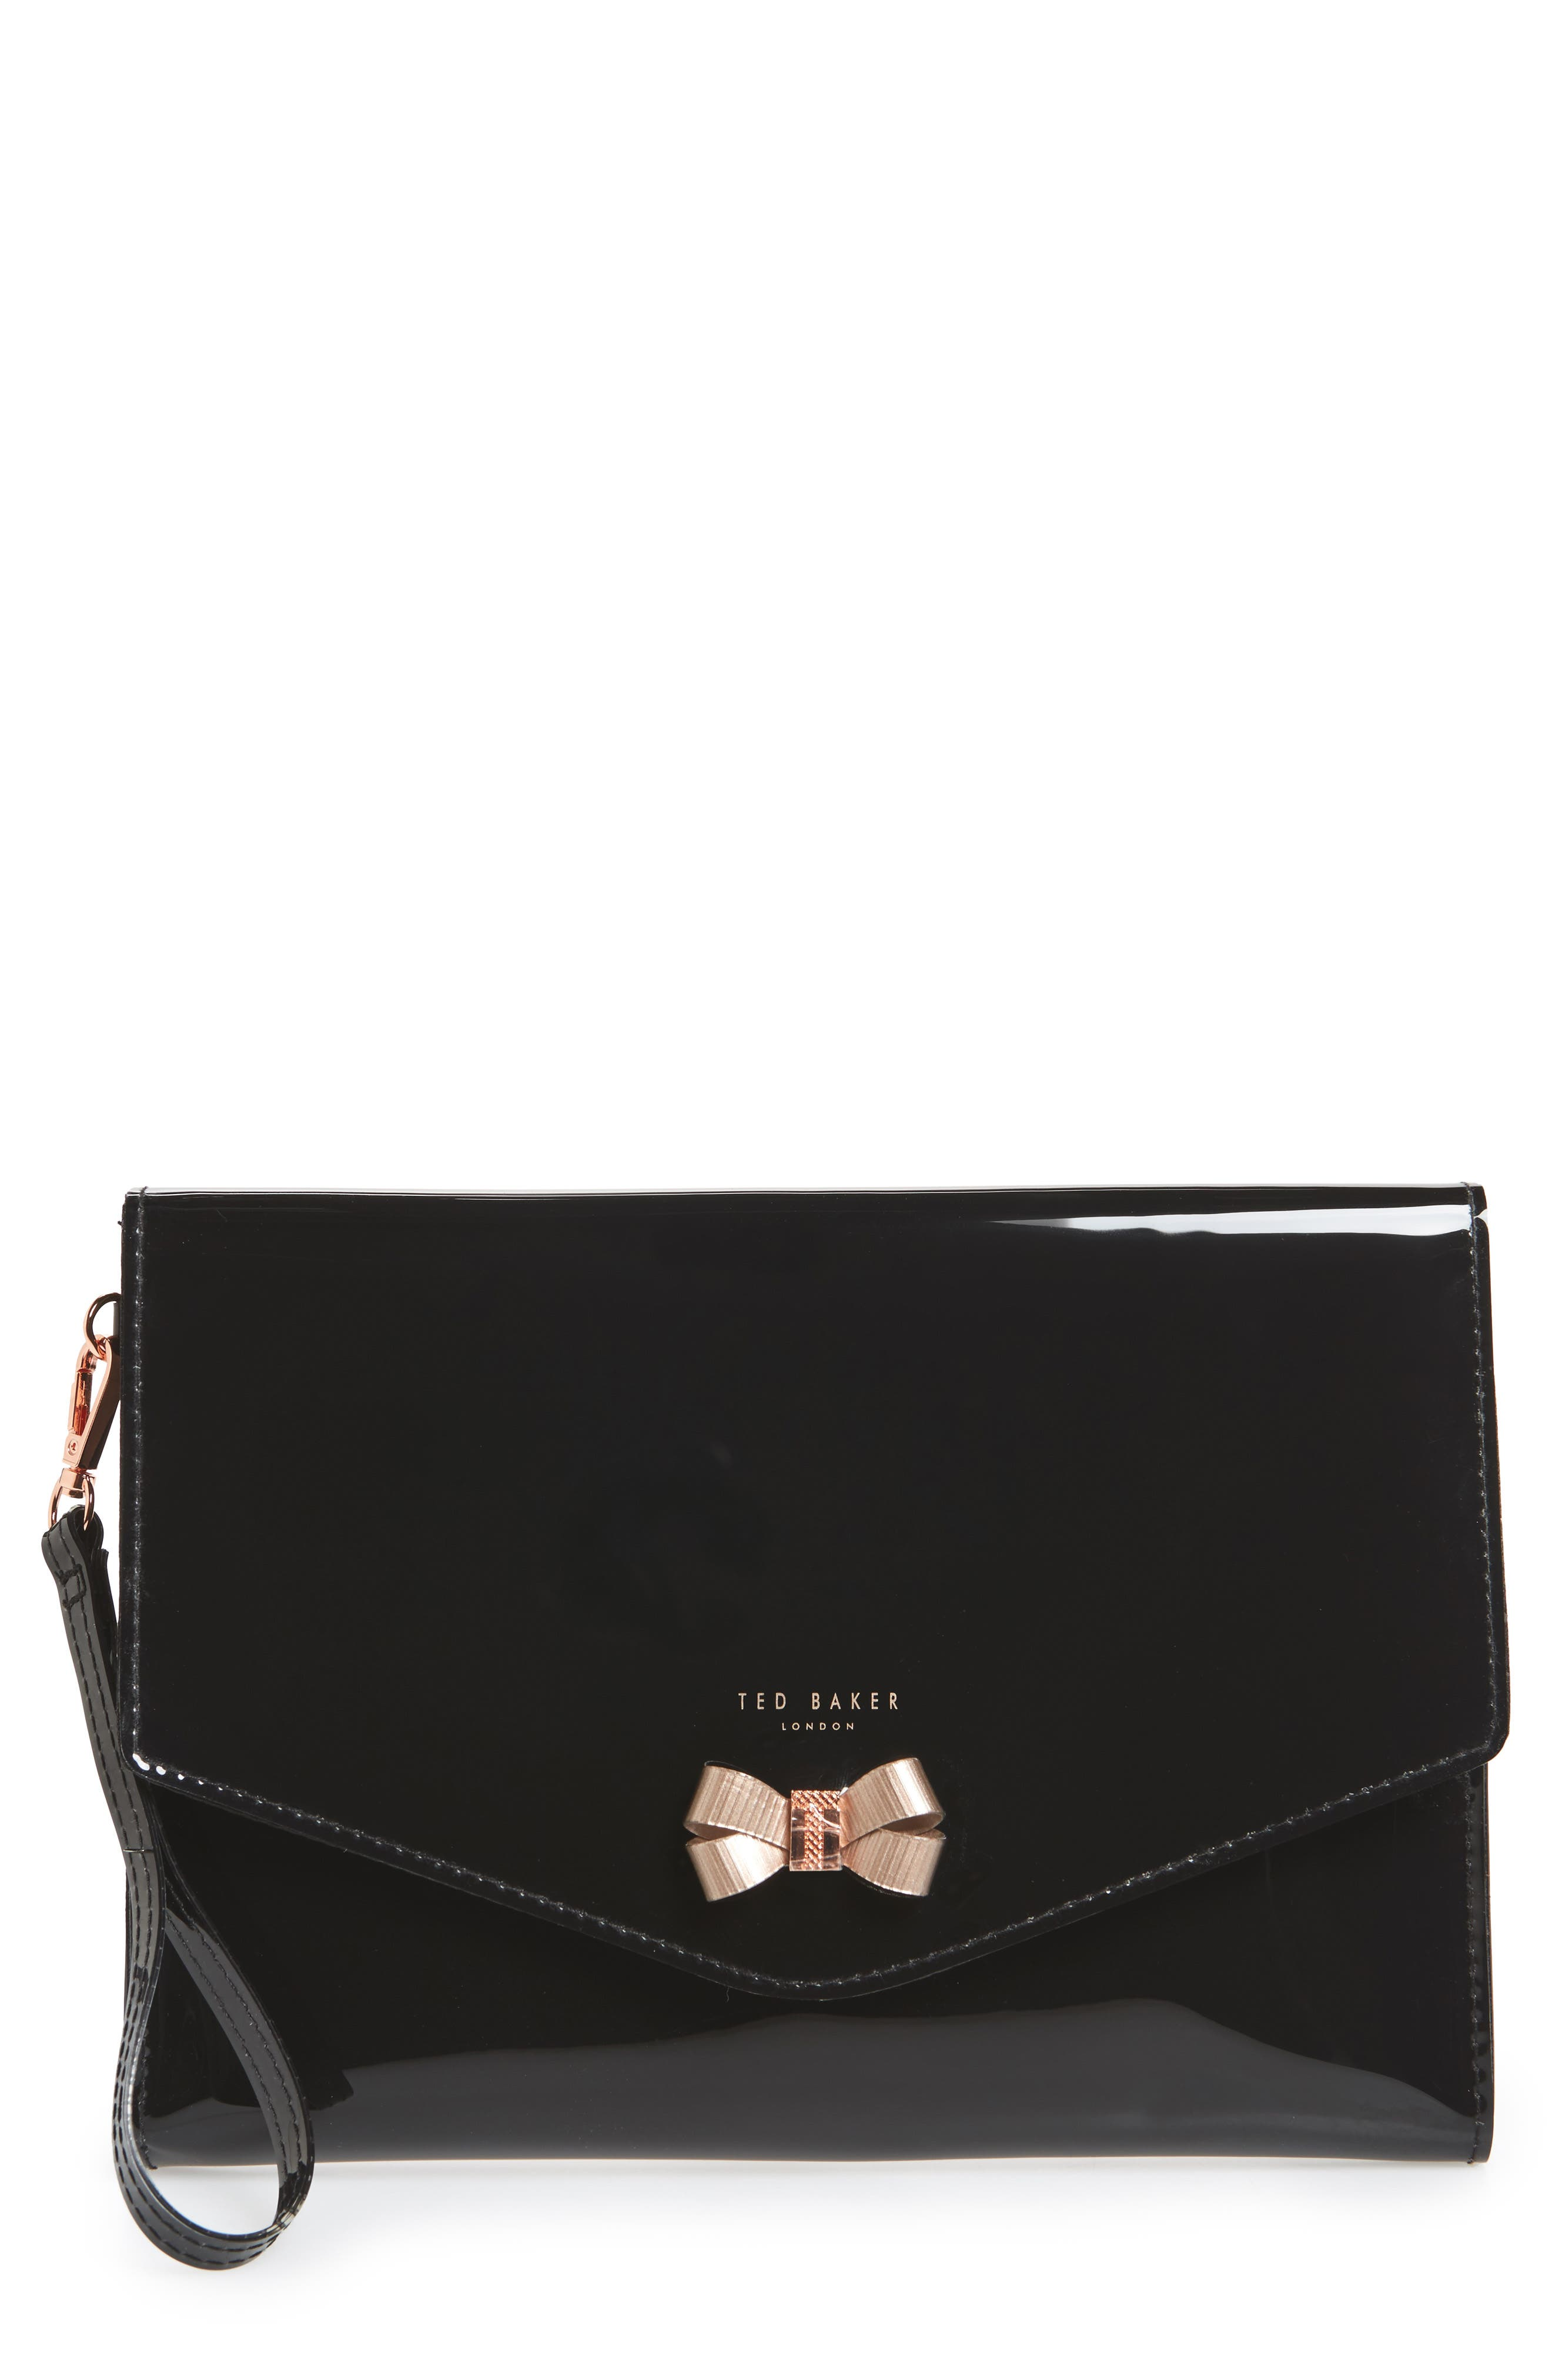 Alternate Image 1 Selected - Ted Baker London Luanne iPad Mini 4 Envelope Clutch